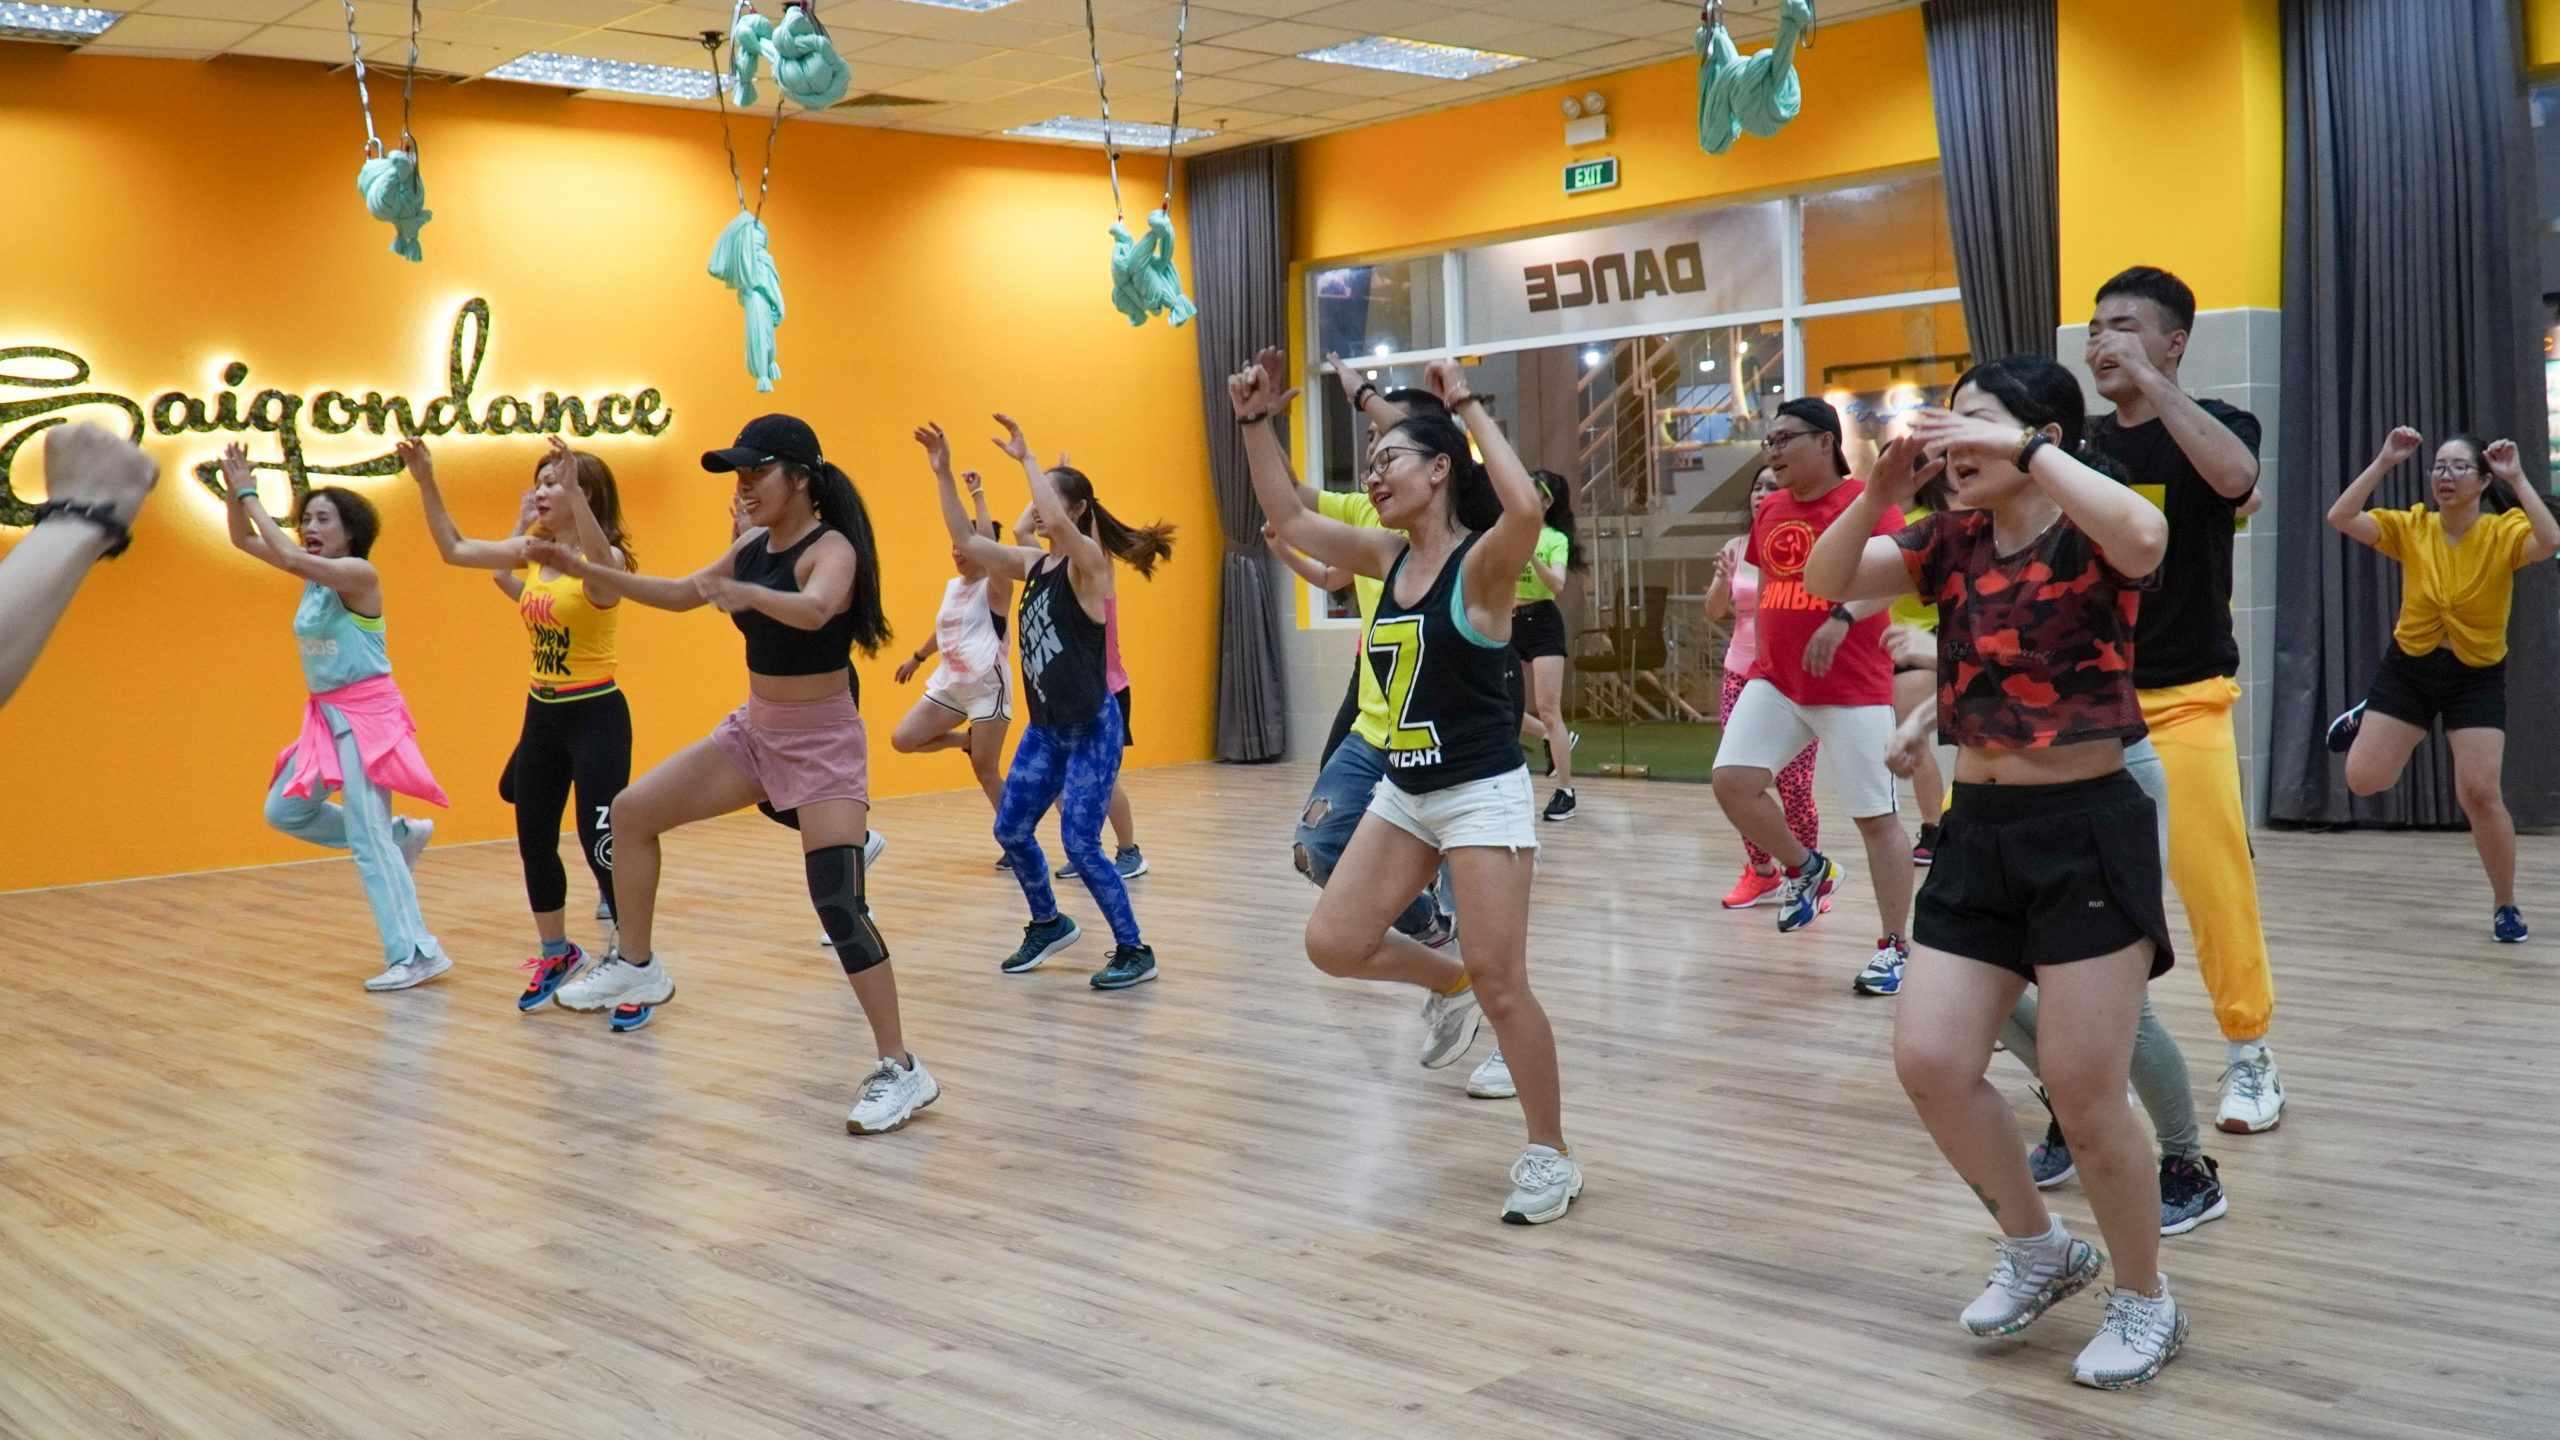 EXCITING ACTIVITIES DURING THE FIRST MONTH OF SAIGONDANCE DISTRICT 1 11